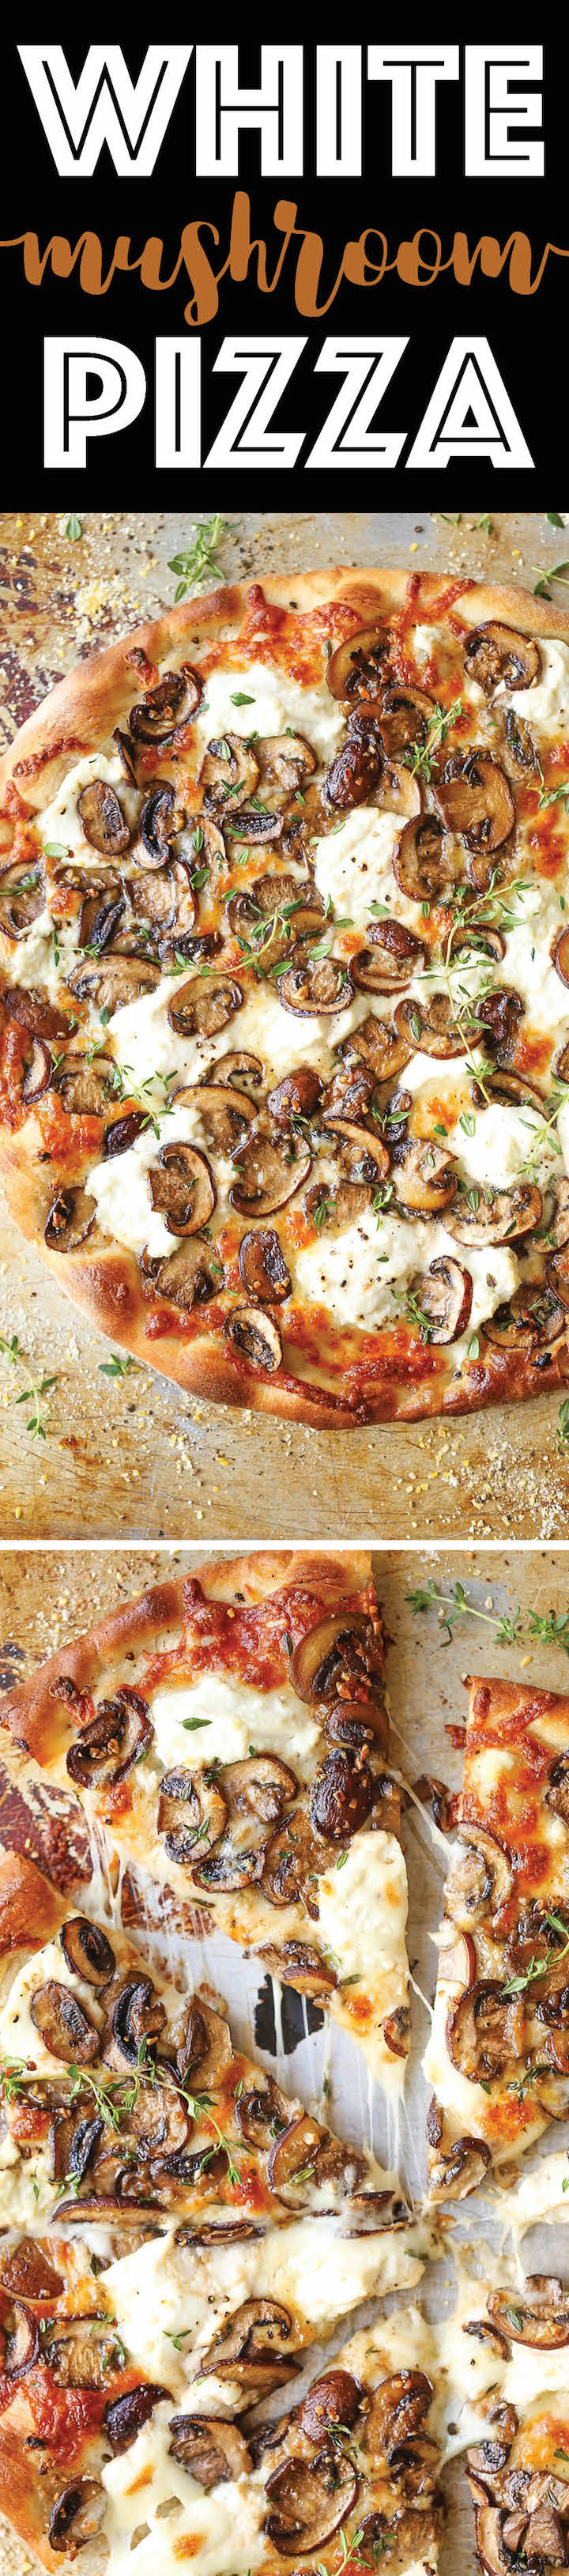 White Mushroom Pizza Recipe via Damn Delicious - The BEST pizza for all cheese and mushroom lovers! Loaded with 2 types of cheese and garlic herb sautéed mushrooms!! AMAZING.